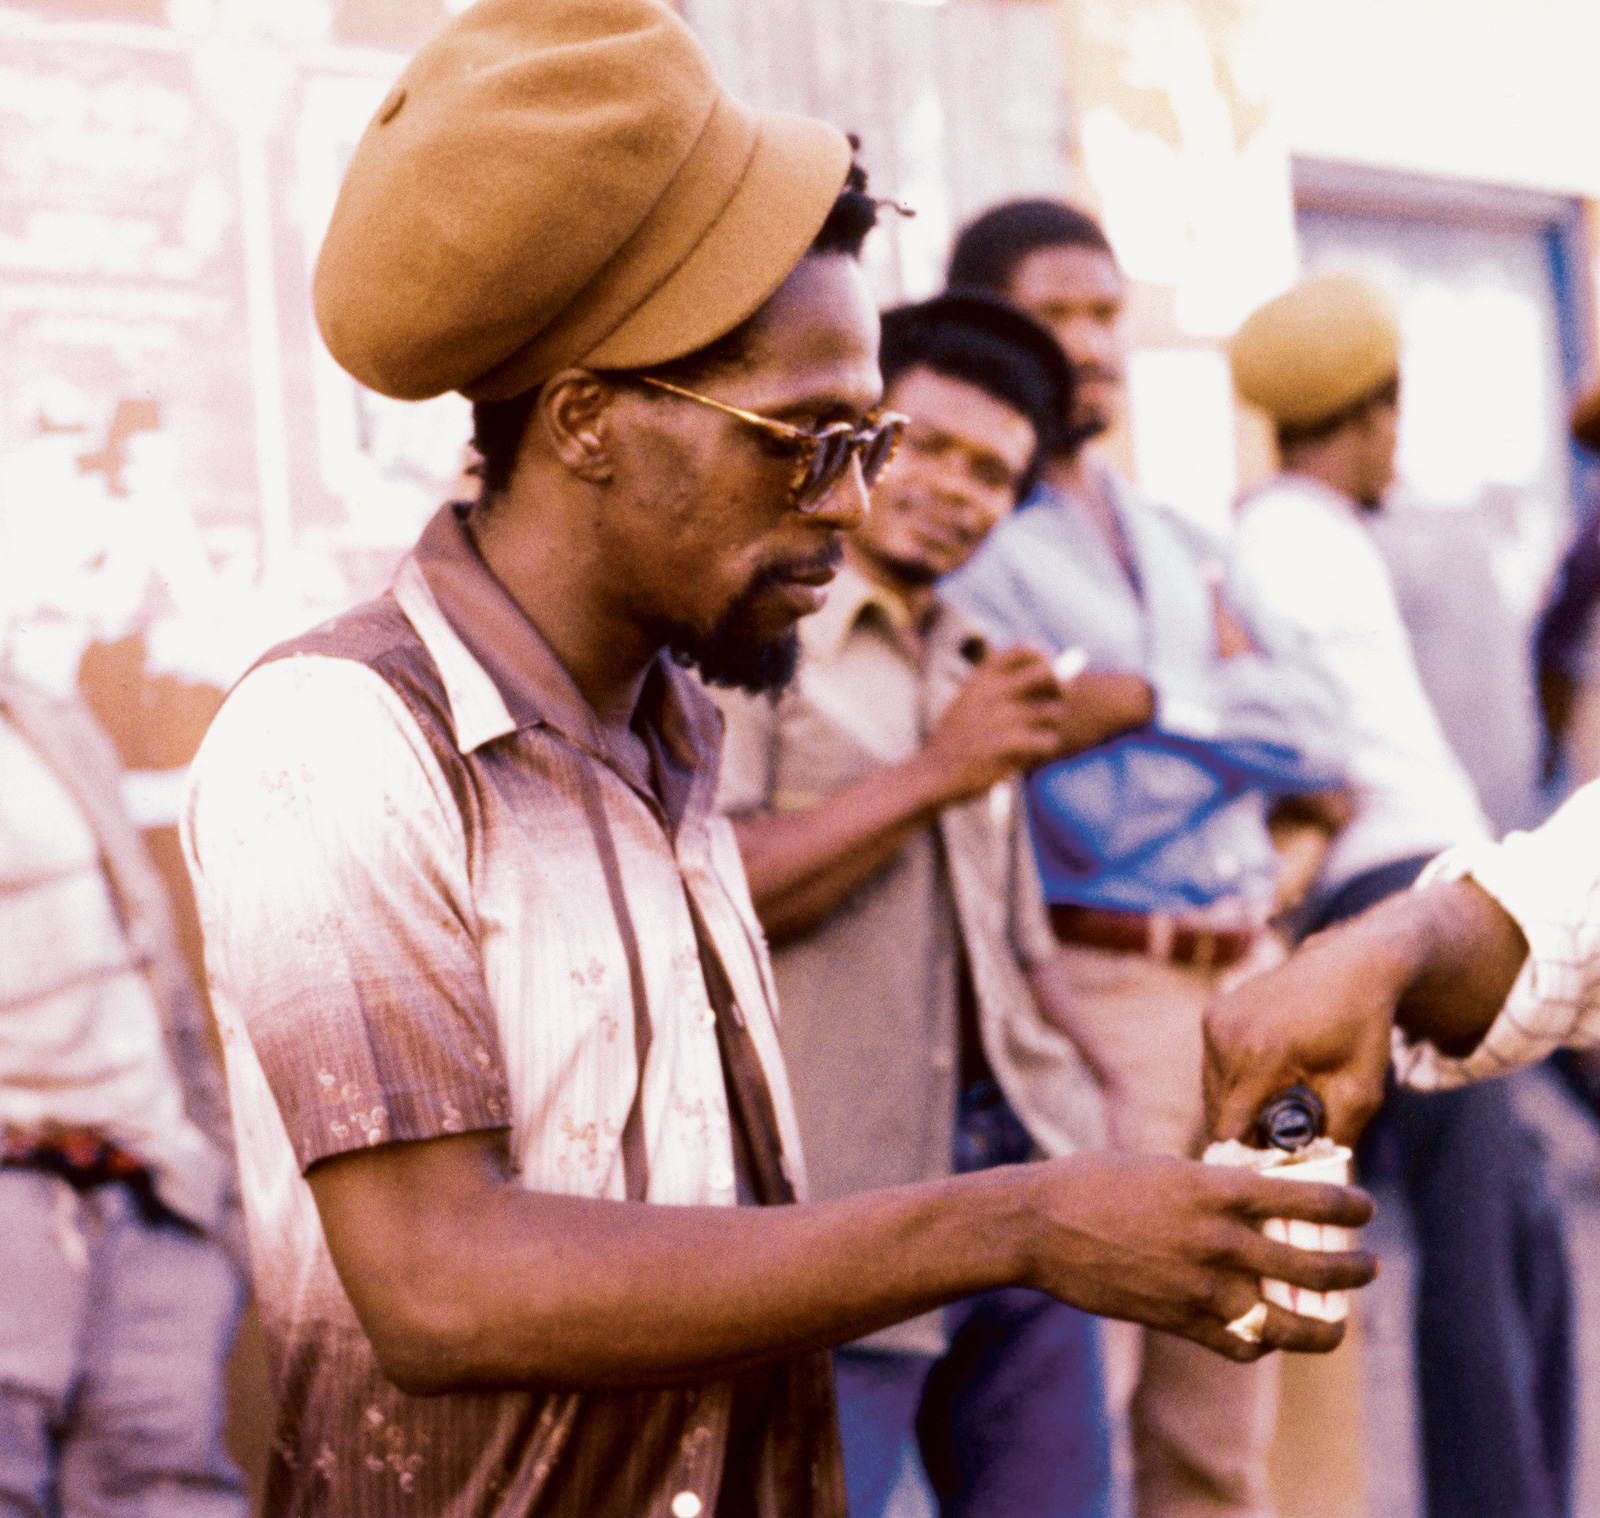 Swagger & Pomp: Jamaica's Dancehall Style | by Lucy McKeon